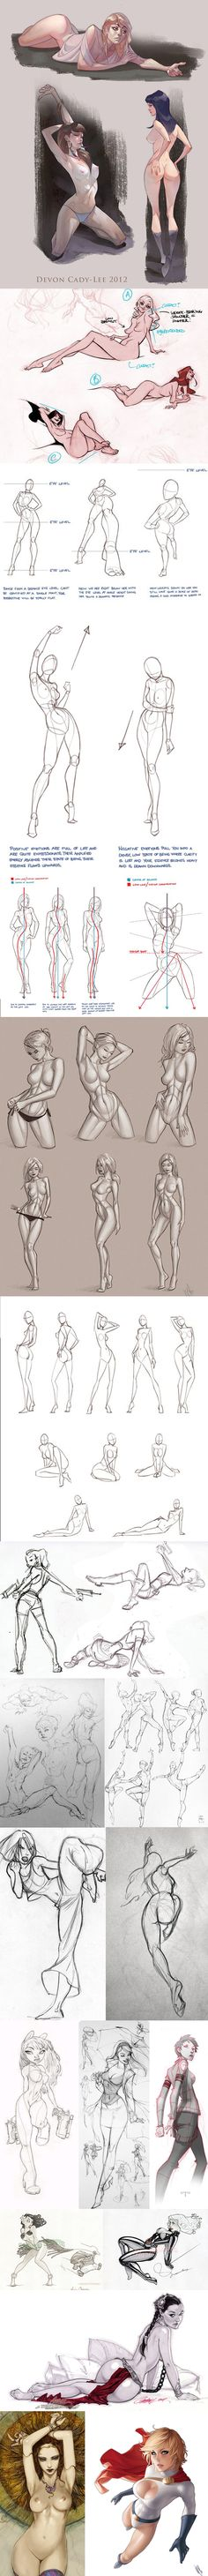 Drawing reference – stock for drawing women.